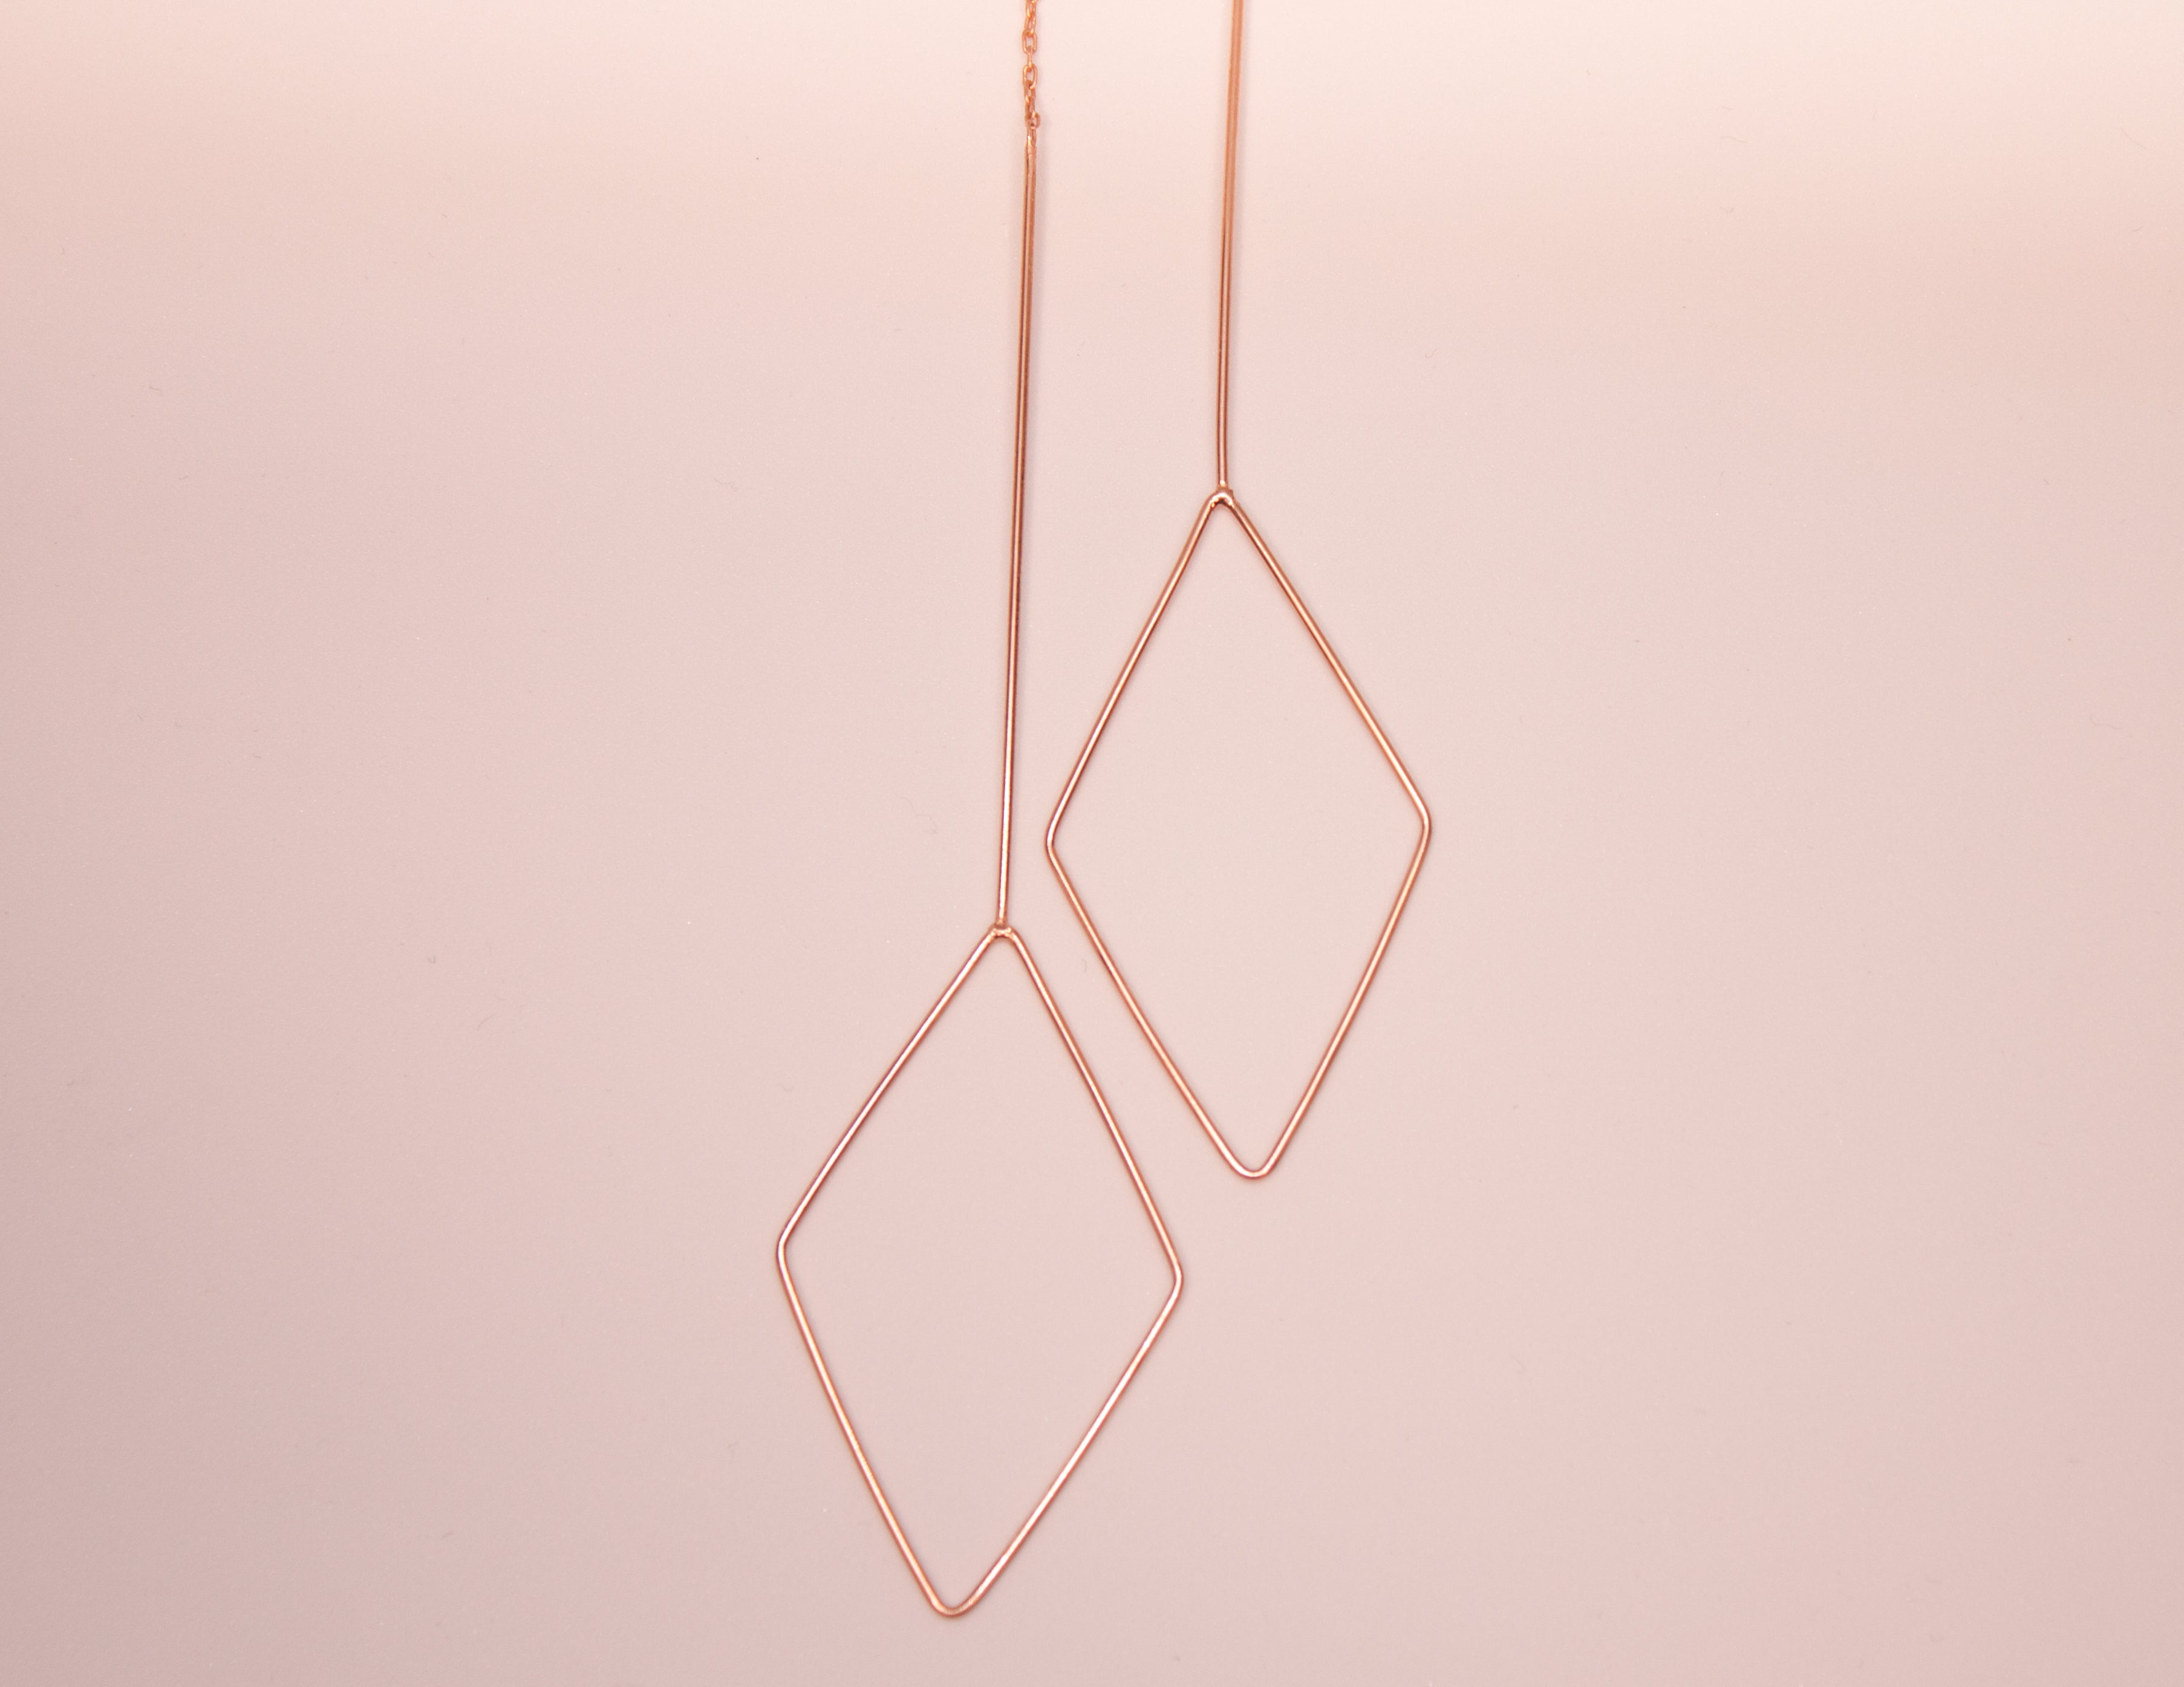 Rose Gold Diamond Shaped Dangling earrings The Glared